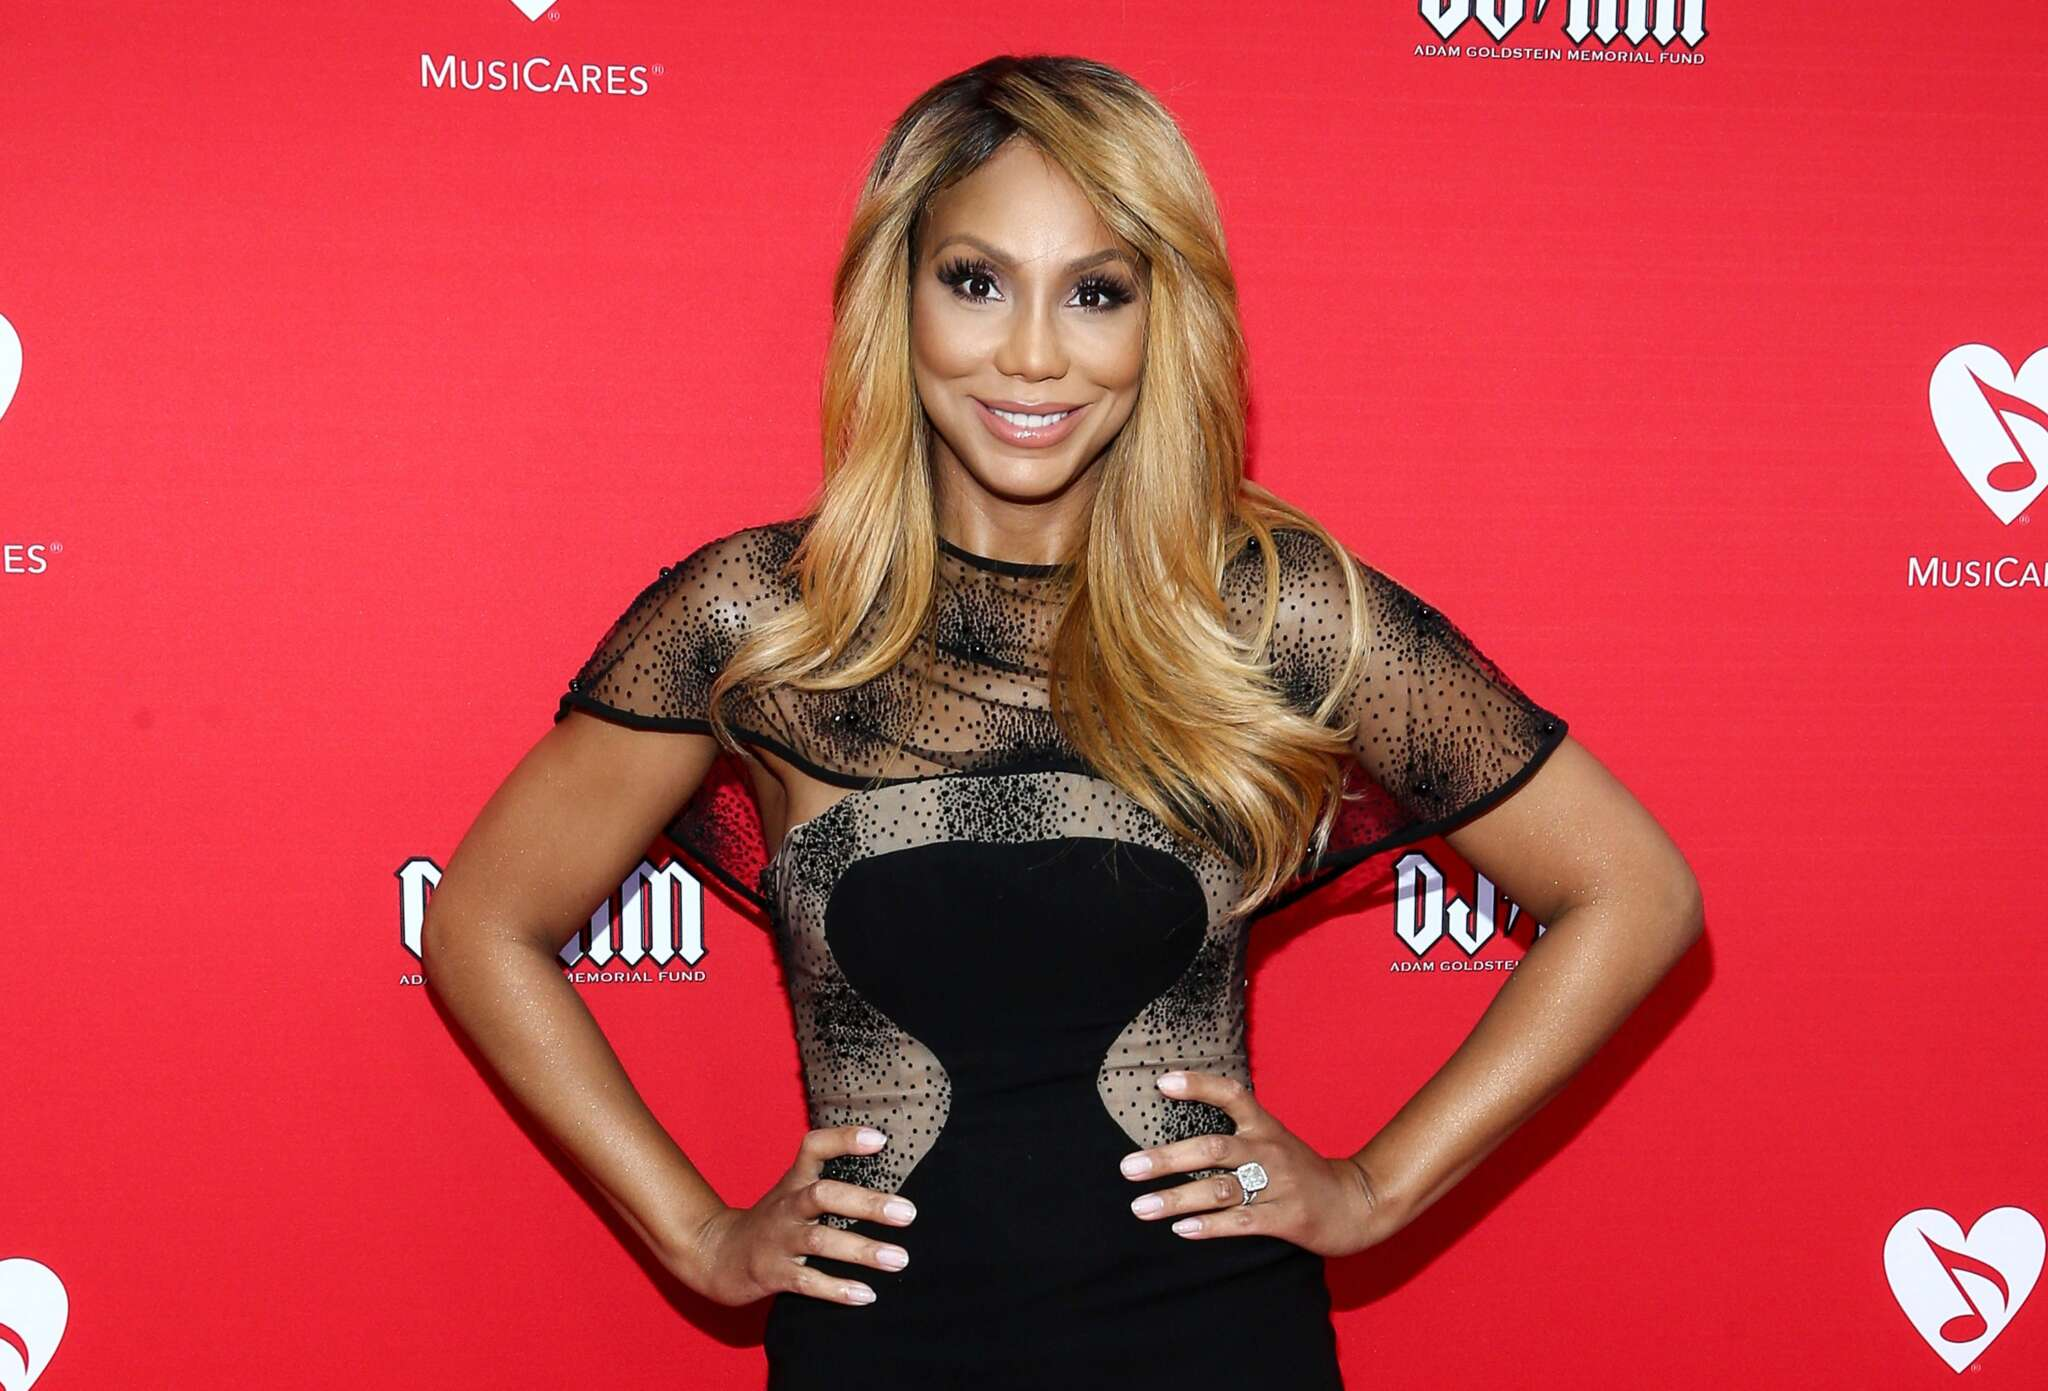 Tamar Braxton Needed A Long Time To Find Her Smile – Check Out Her Emotional Message